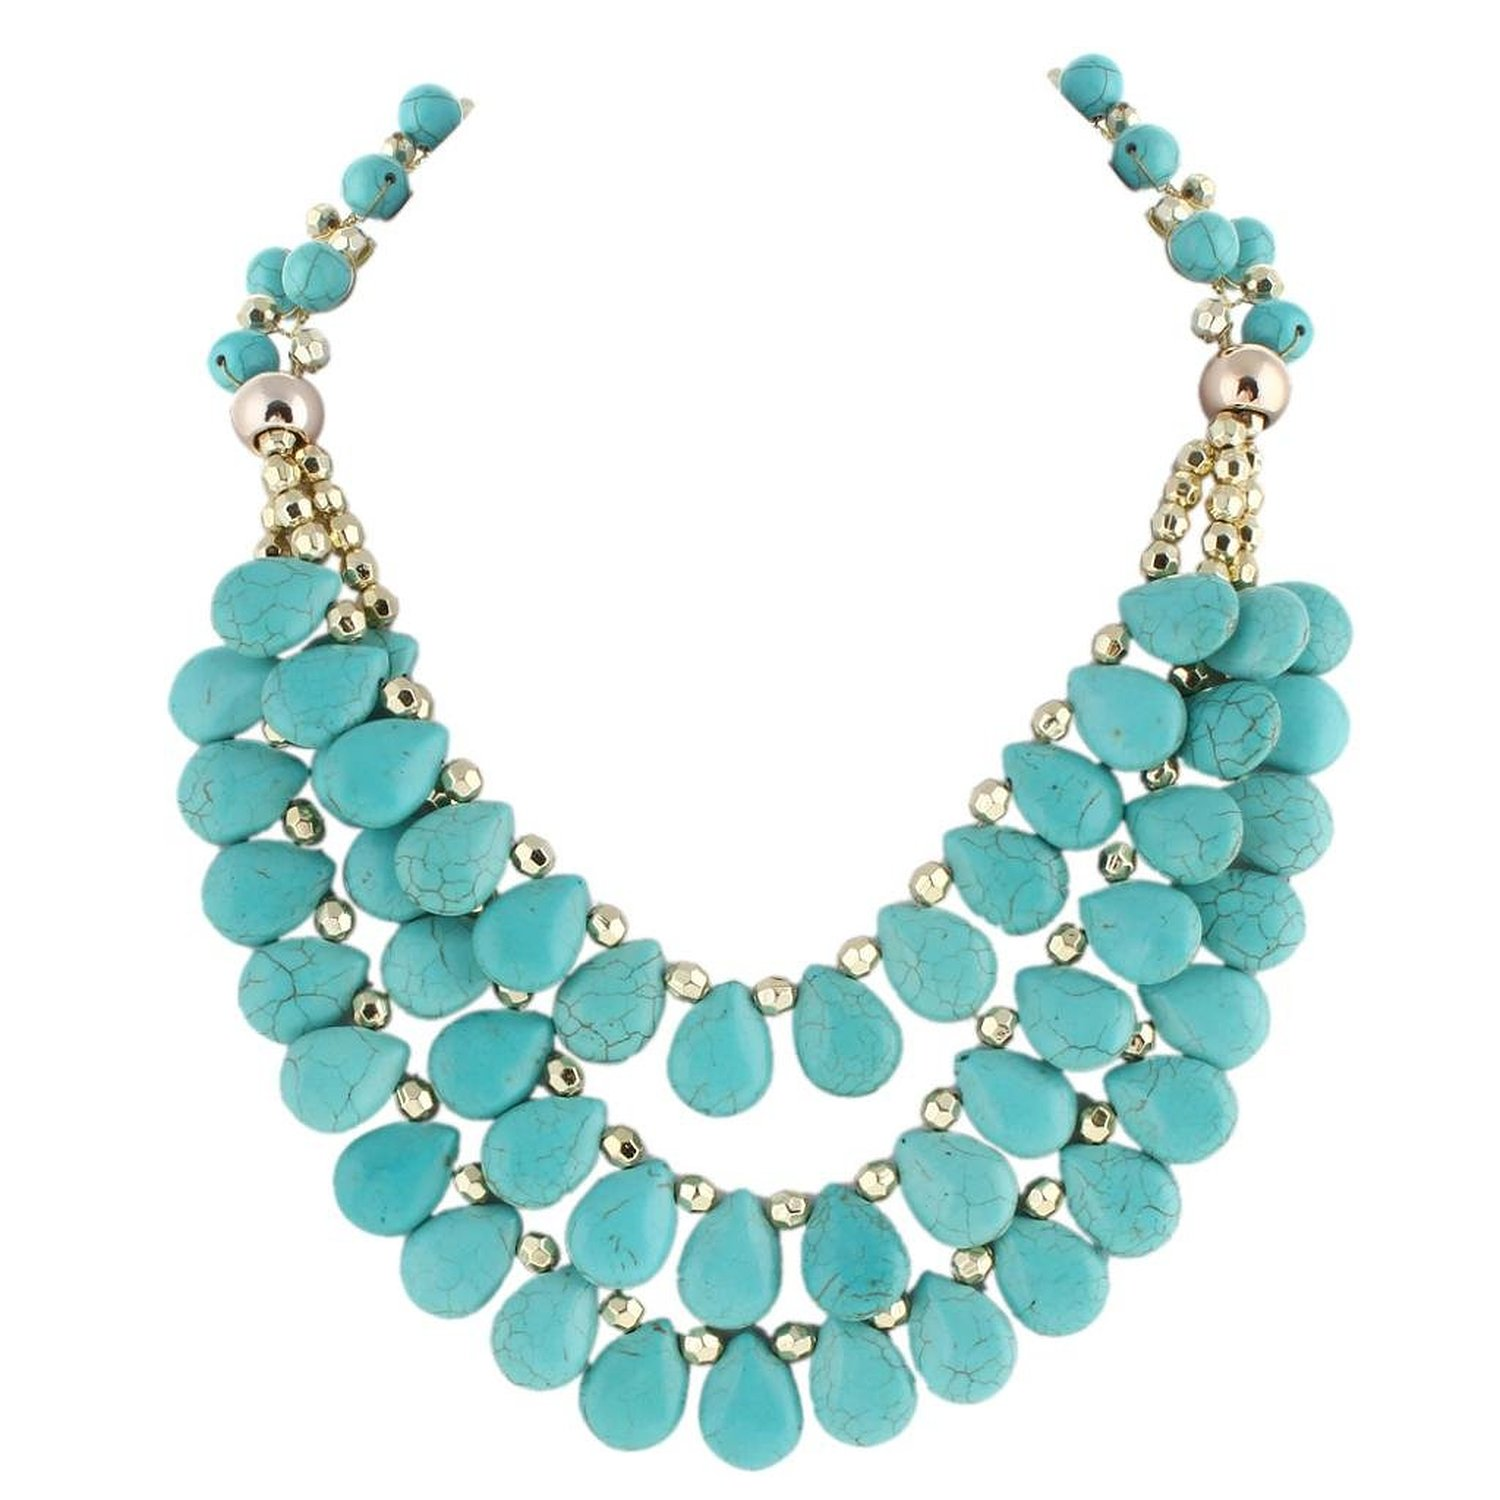 Amazon.com: 3 Layer Teardrop Turquoise Color Chunky Statement Bubble Necklace Gold-Tone N03759-1: Jewelry